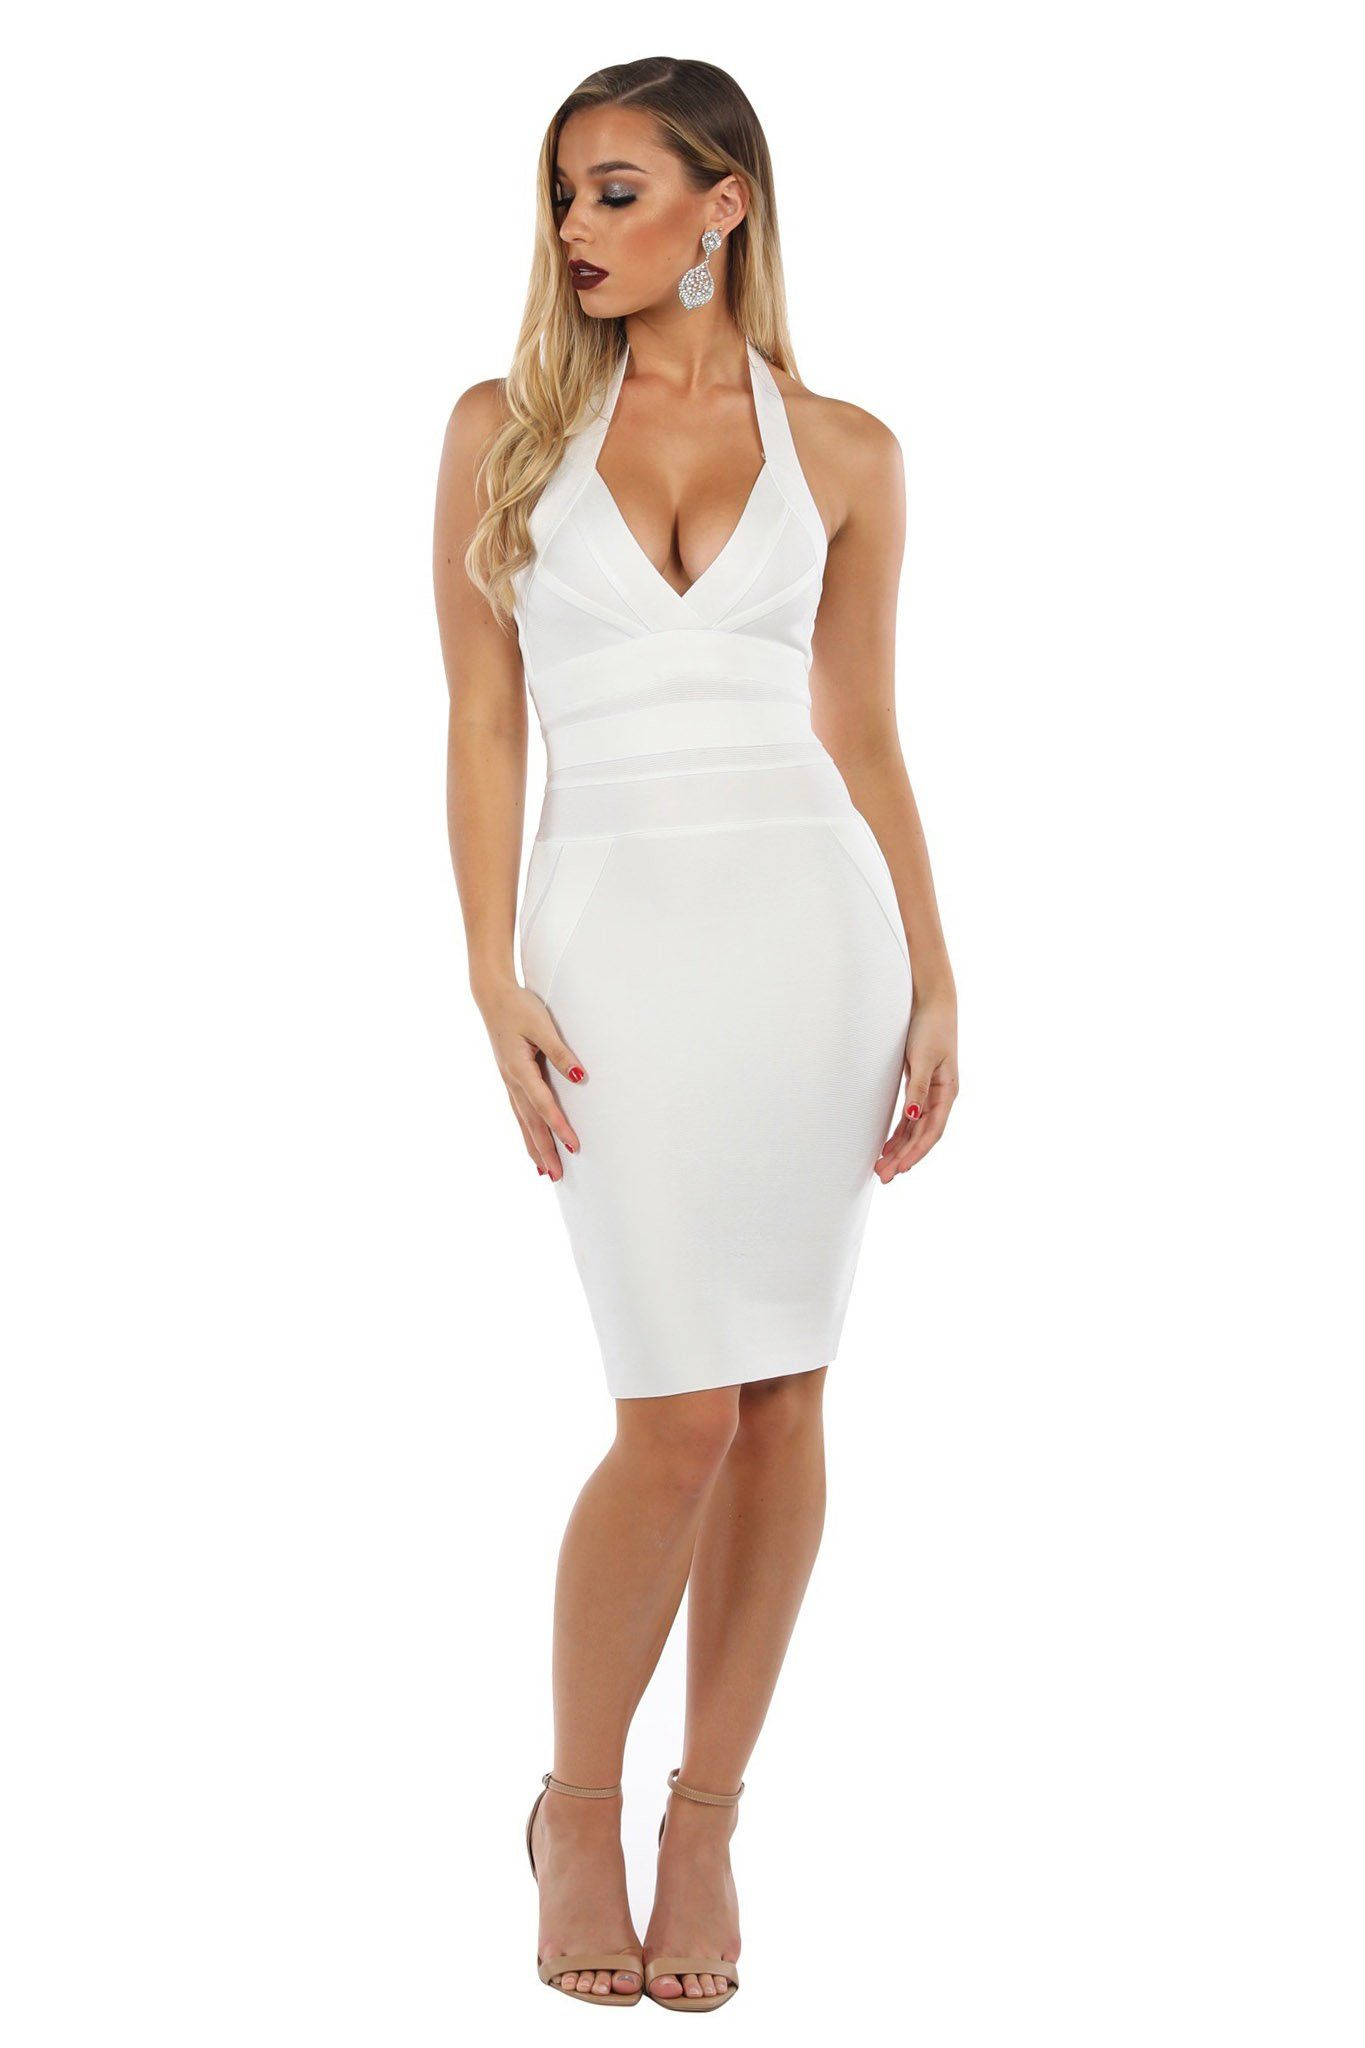 White tight fitting bandage dress in knee length with plunging halter neckline and open back design